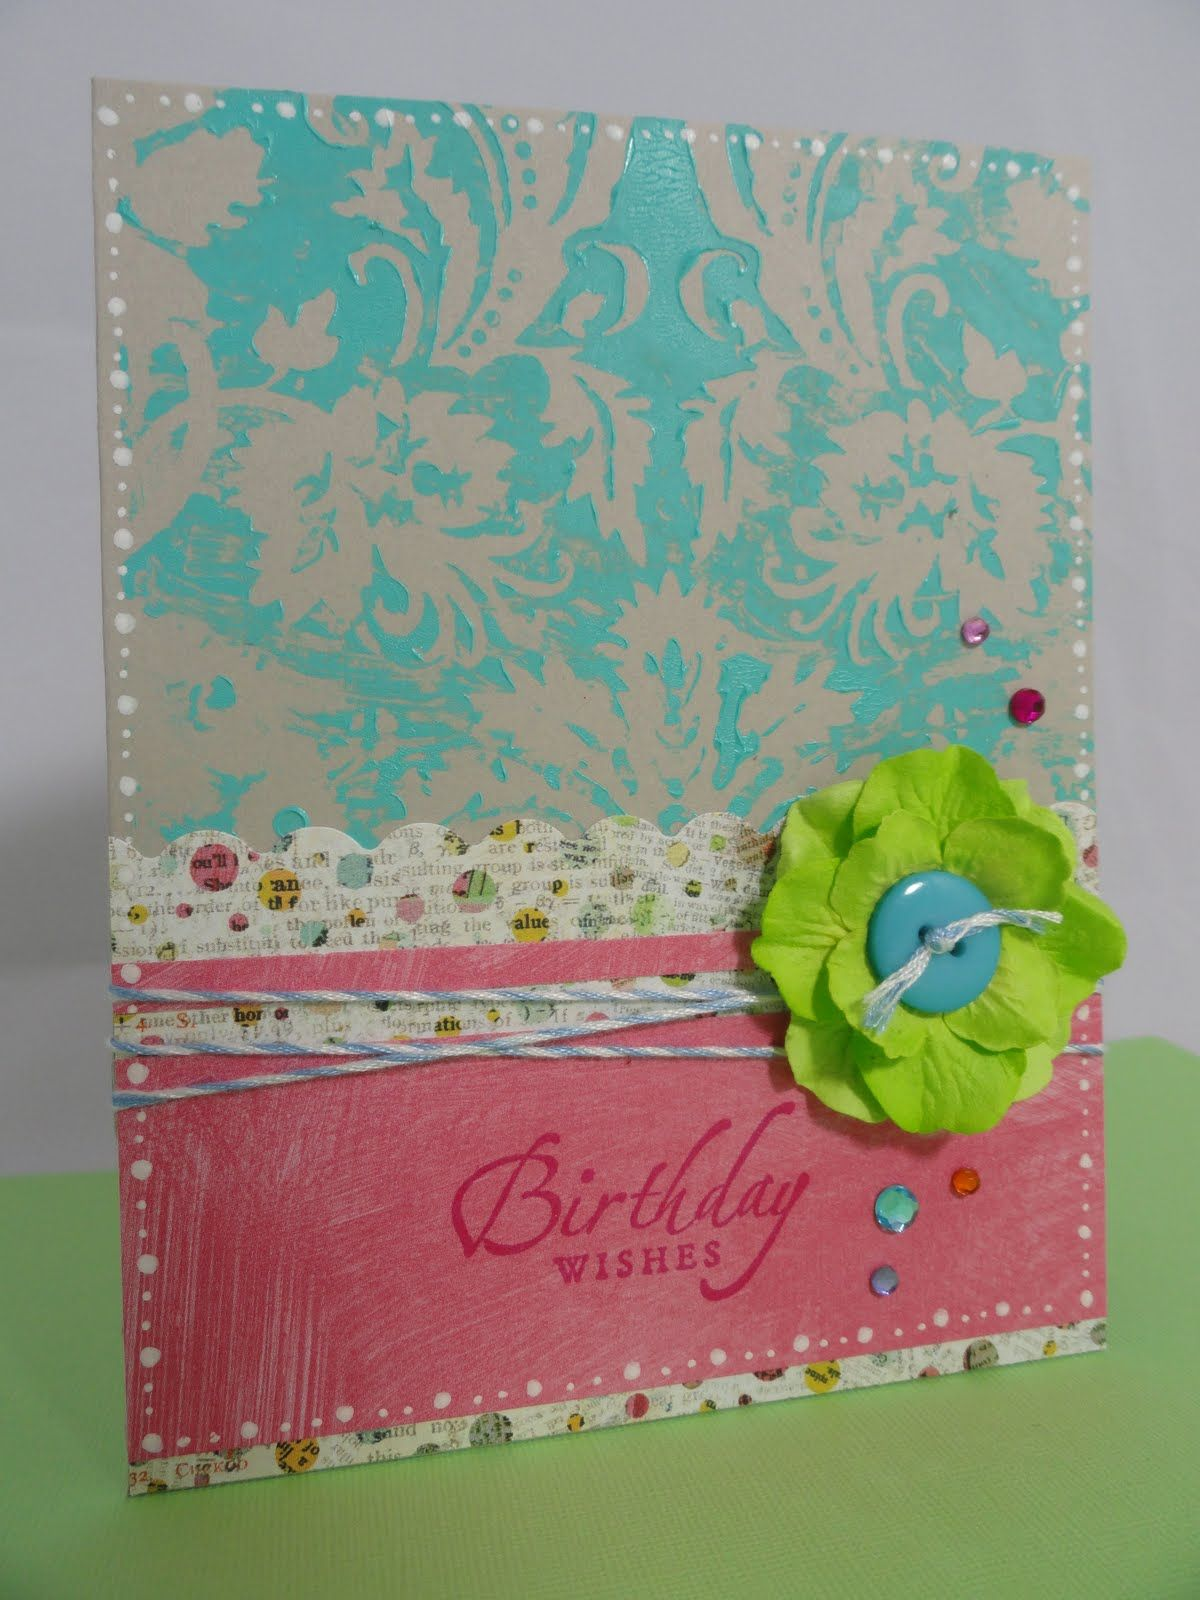 Birthday Wishes Card by Jessica Hess